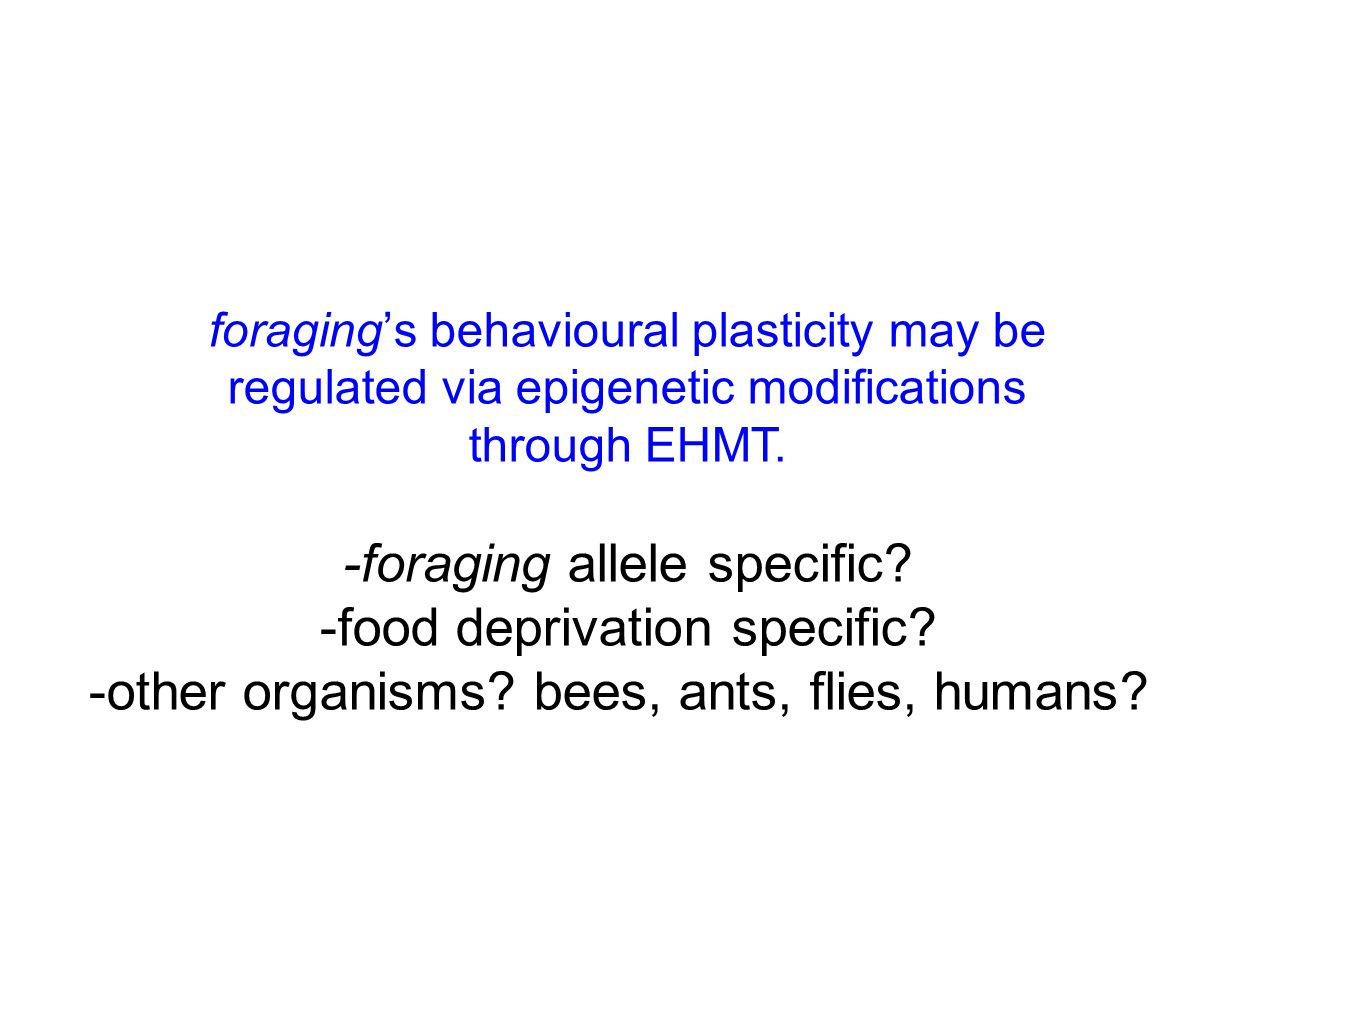 foraging's behavioural plasticity may be regulated via epigenetic modifications through EHMT.